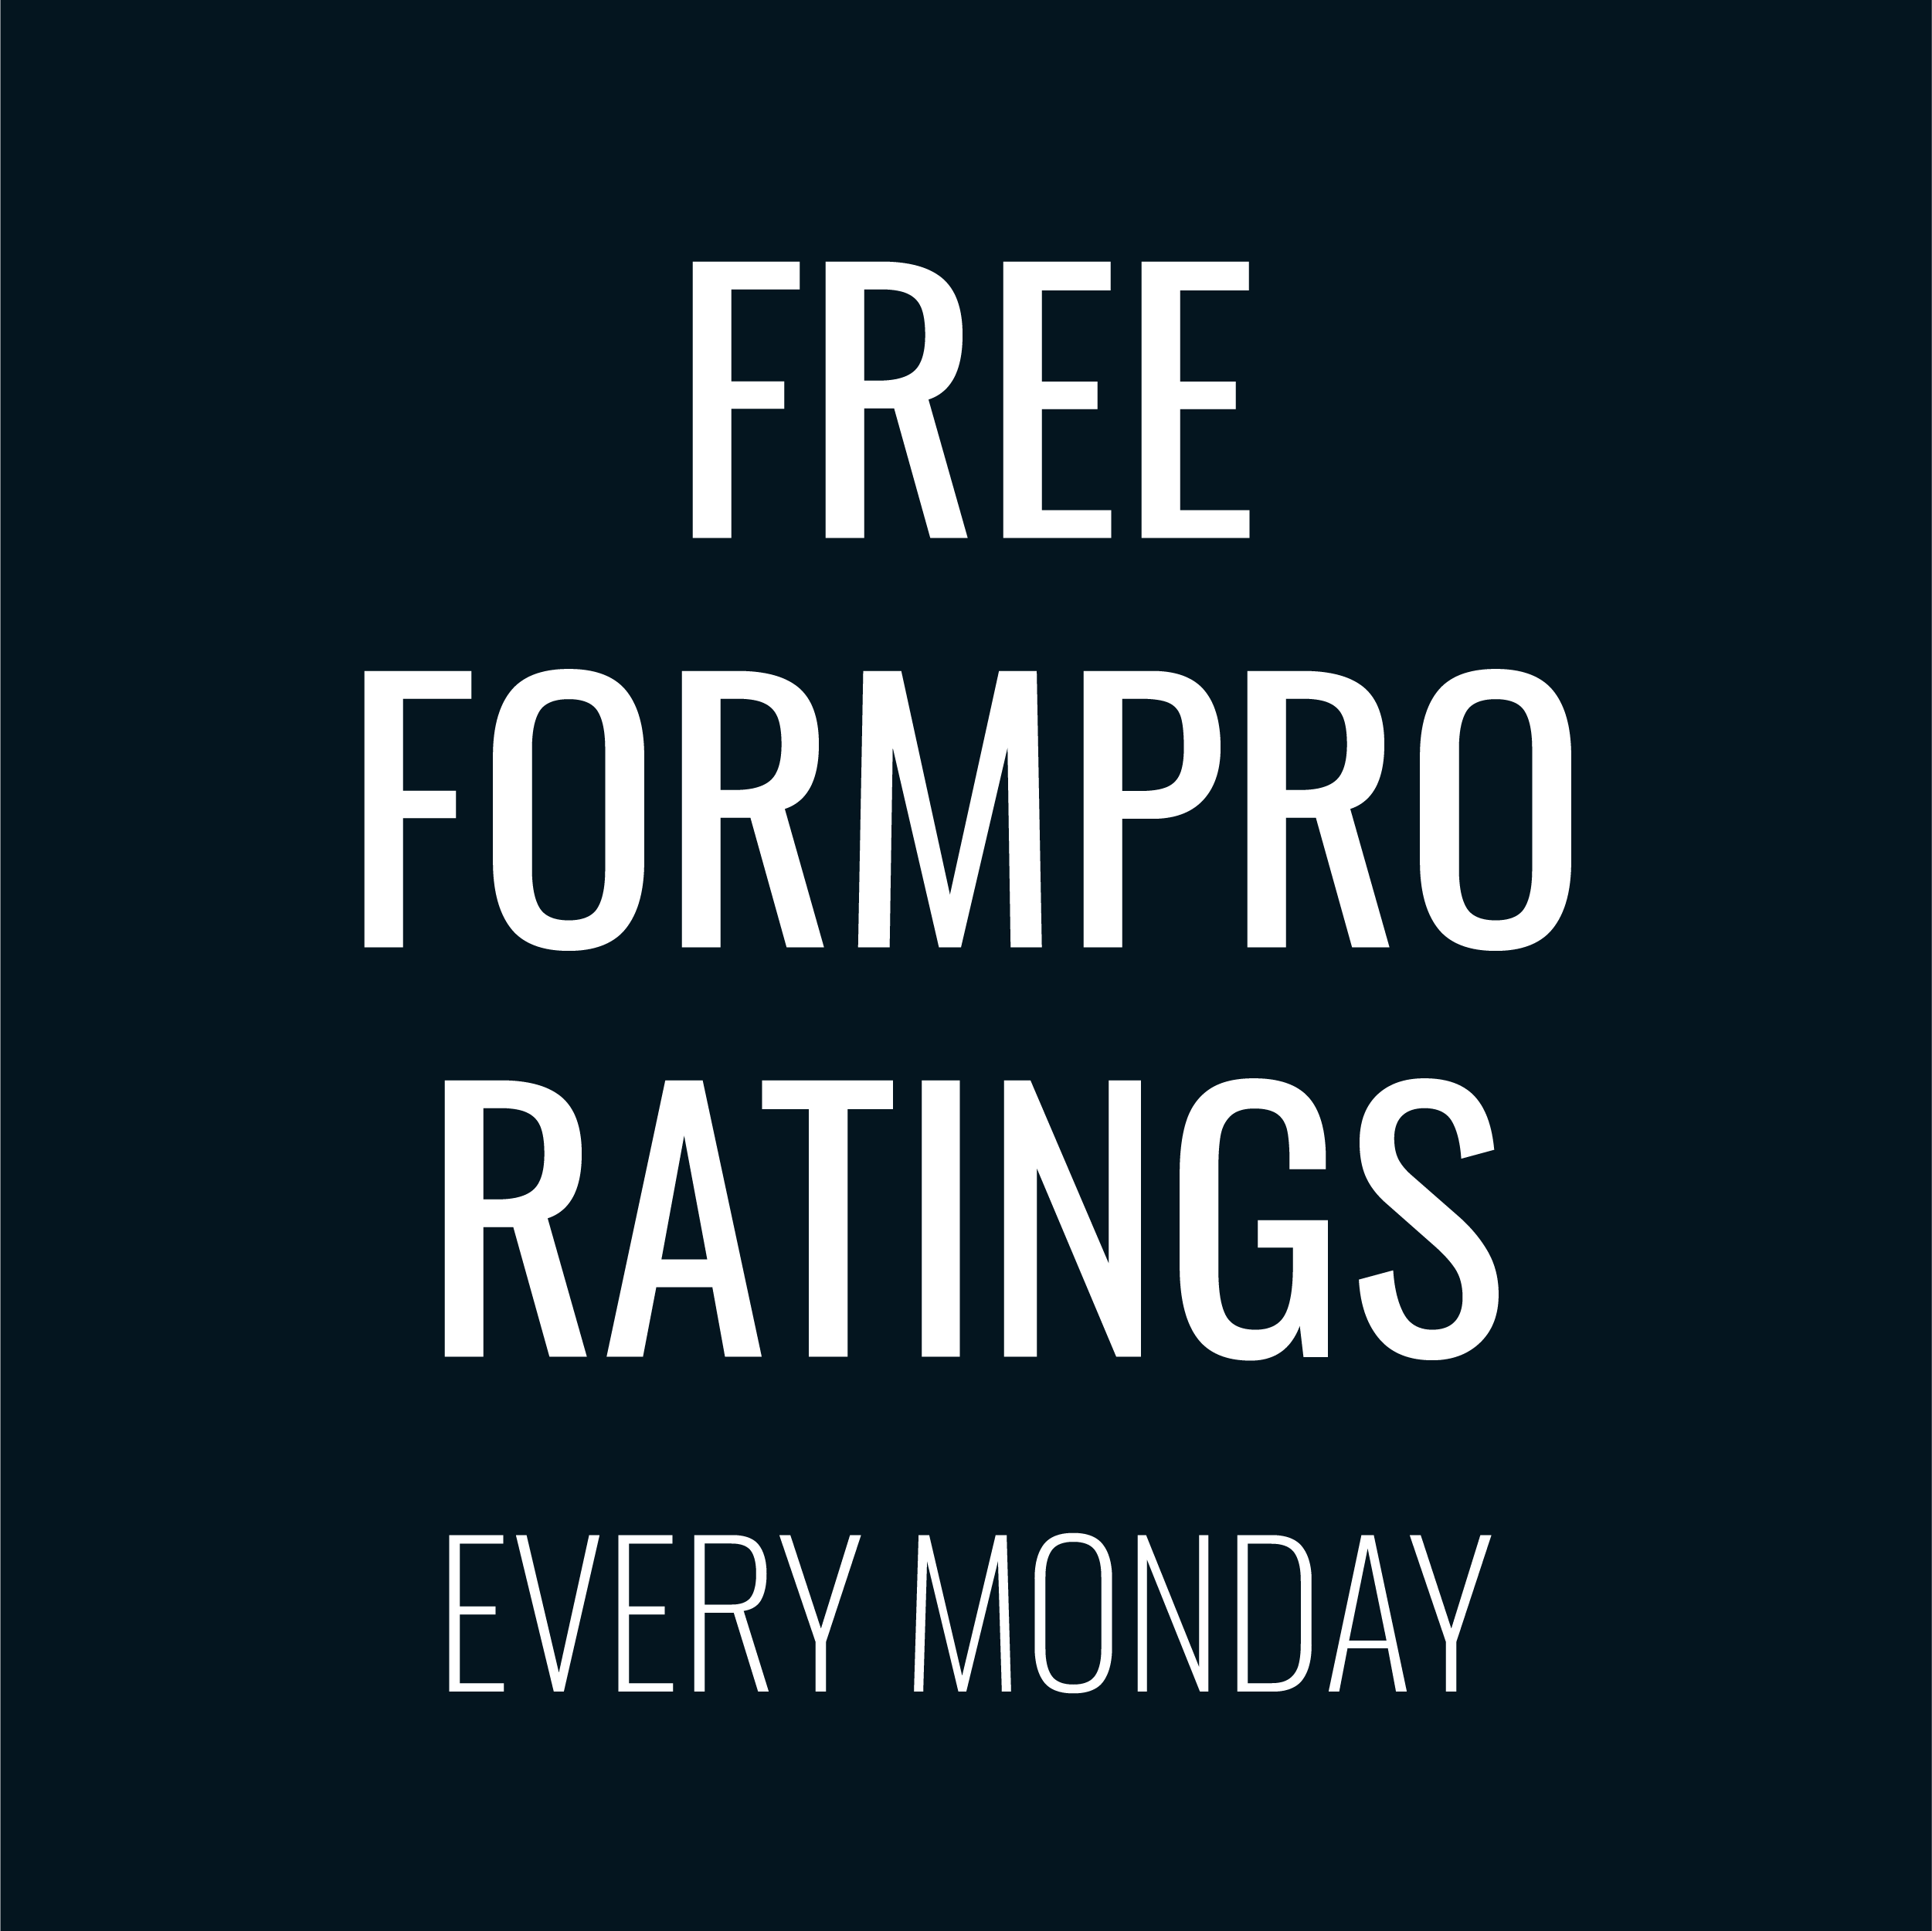 Free Greyhound Ratings Monday